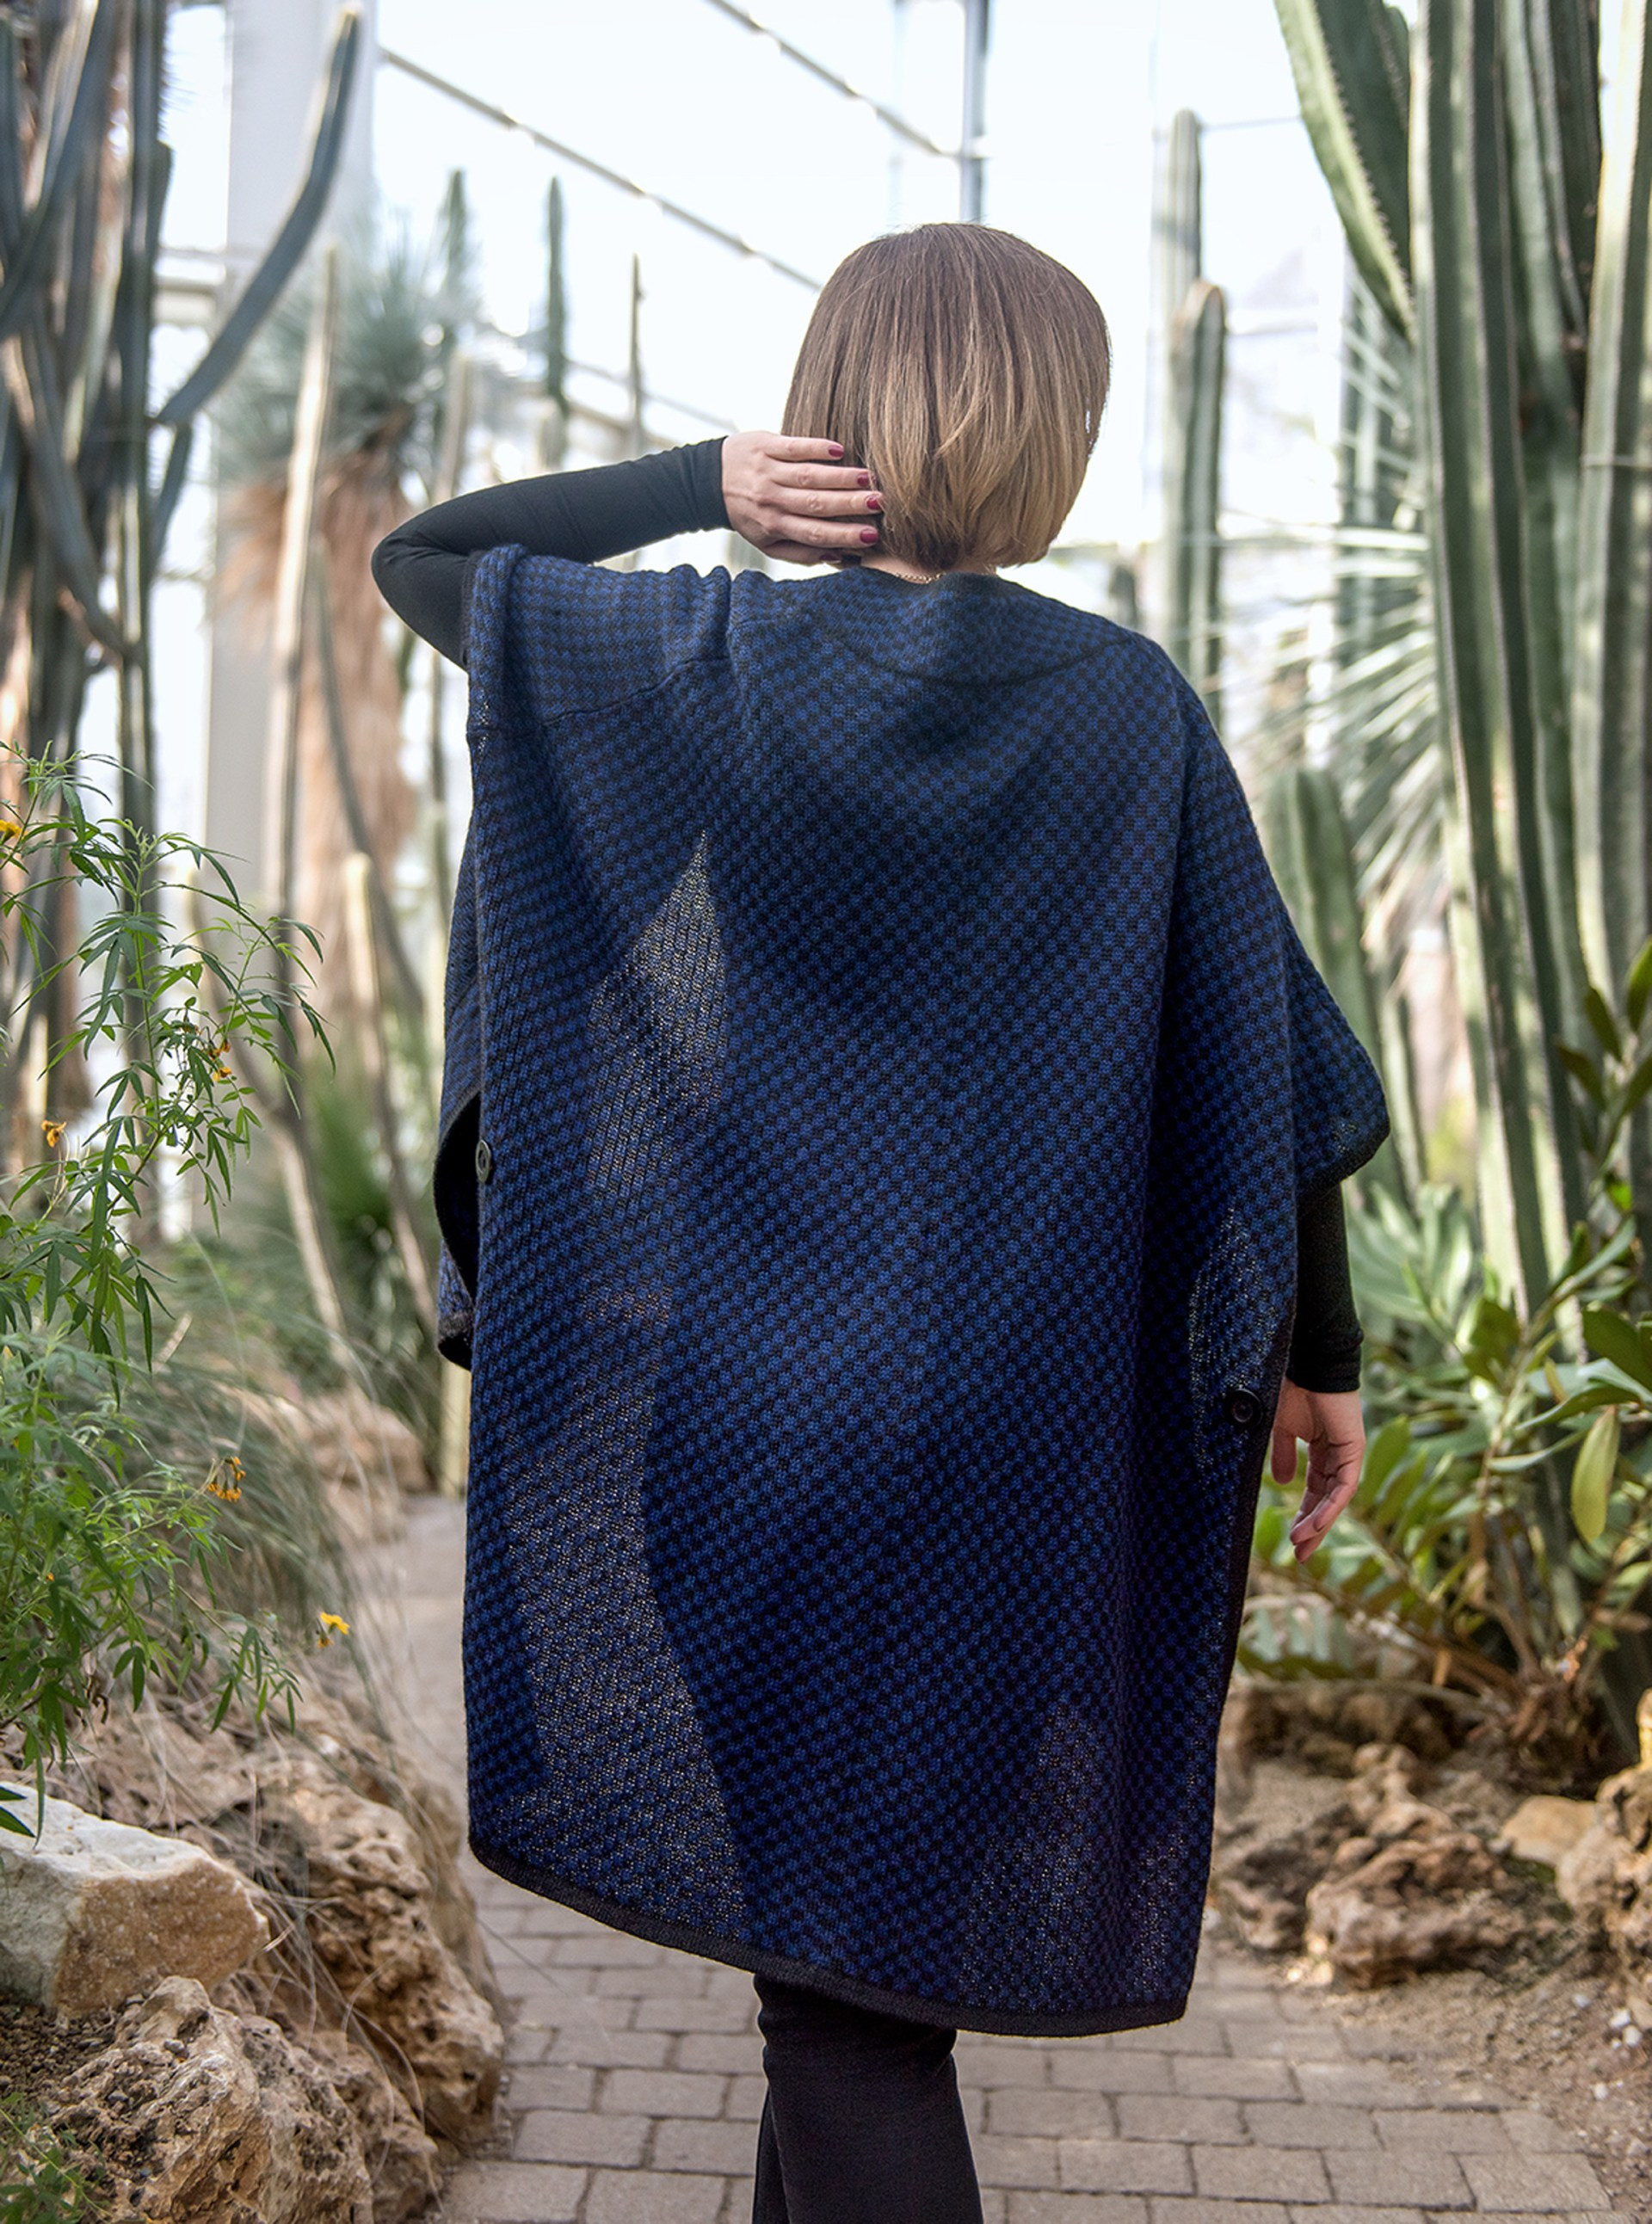 greenlooksgreat-fairfashion-poncho-alpaka